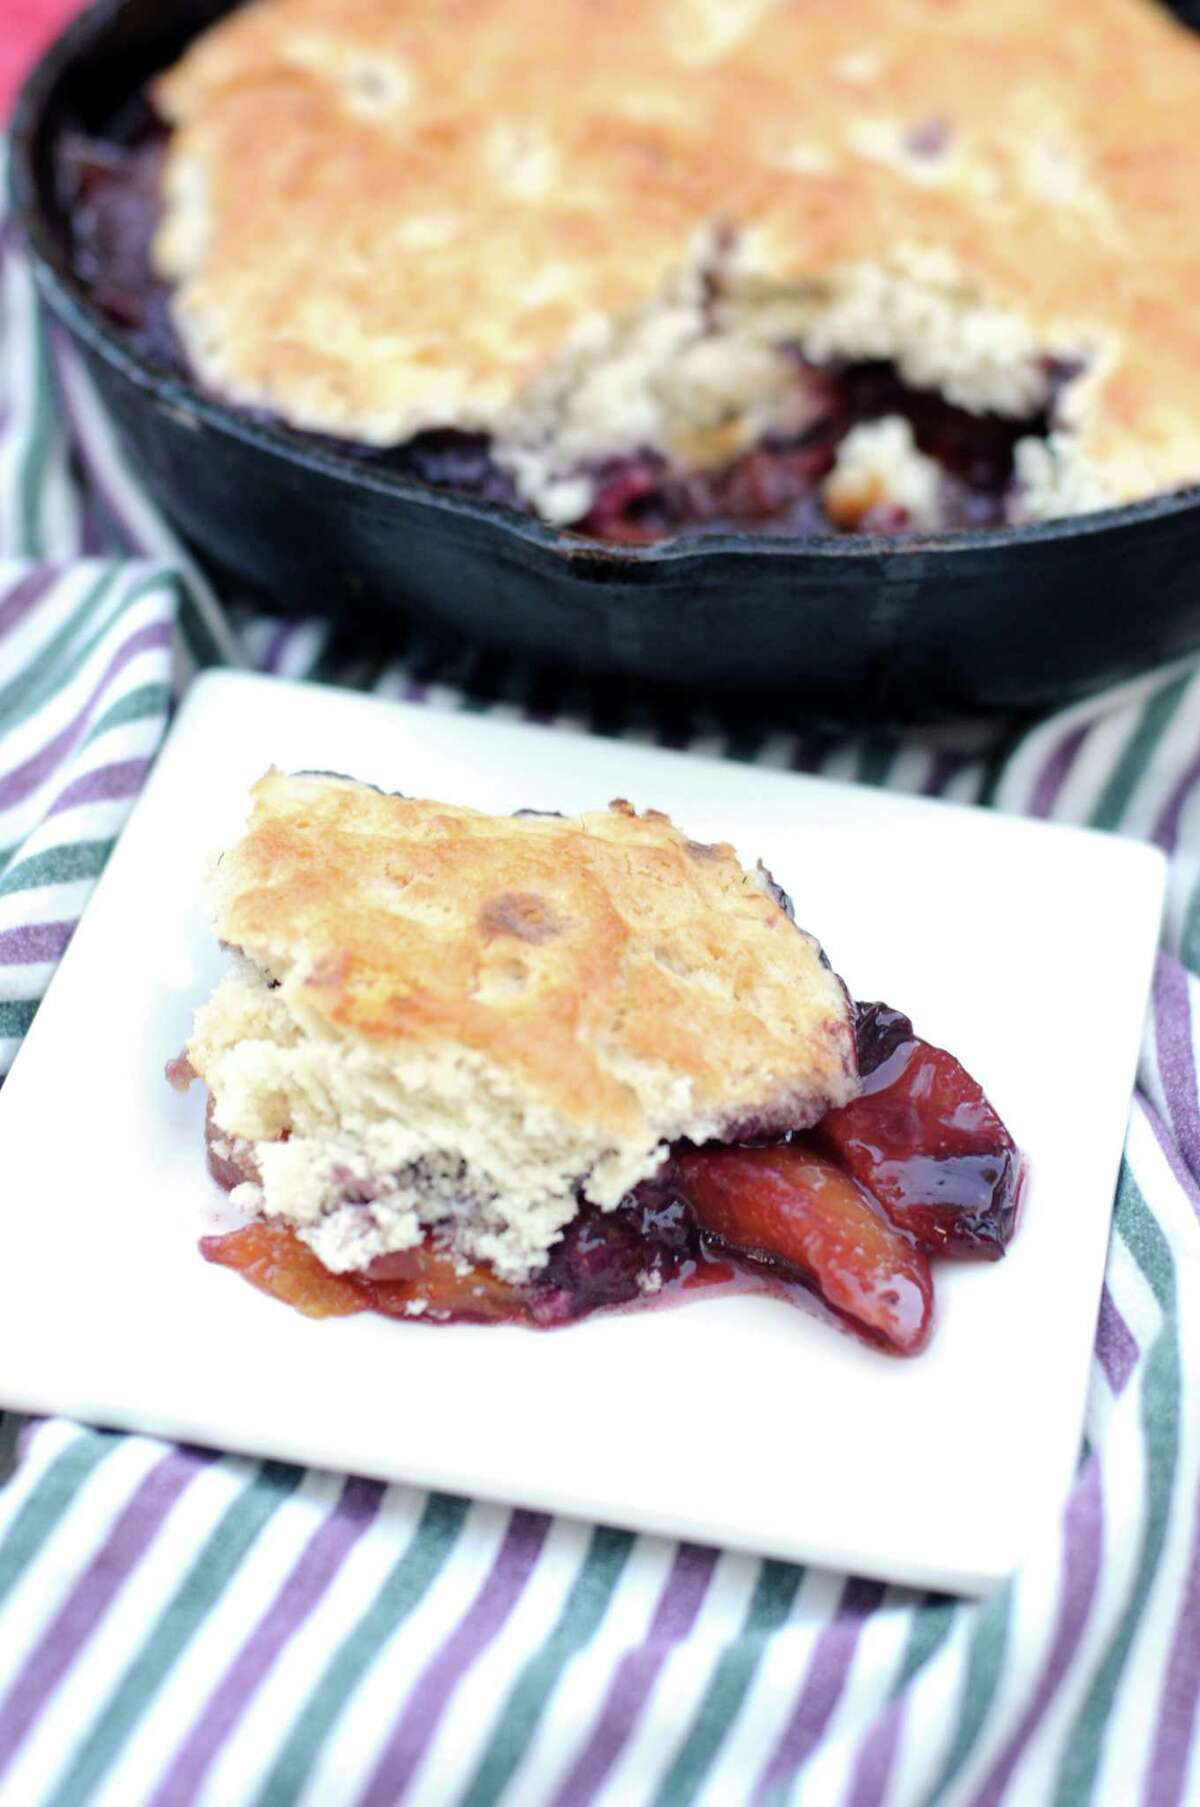 Fire Pit Fruit Cobbler is a classic camp dessert perfect for falll evenings. Recipe, Page E8.